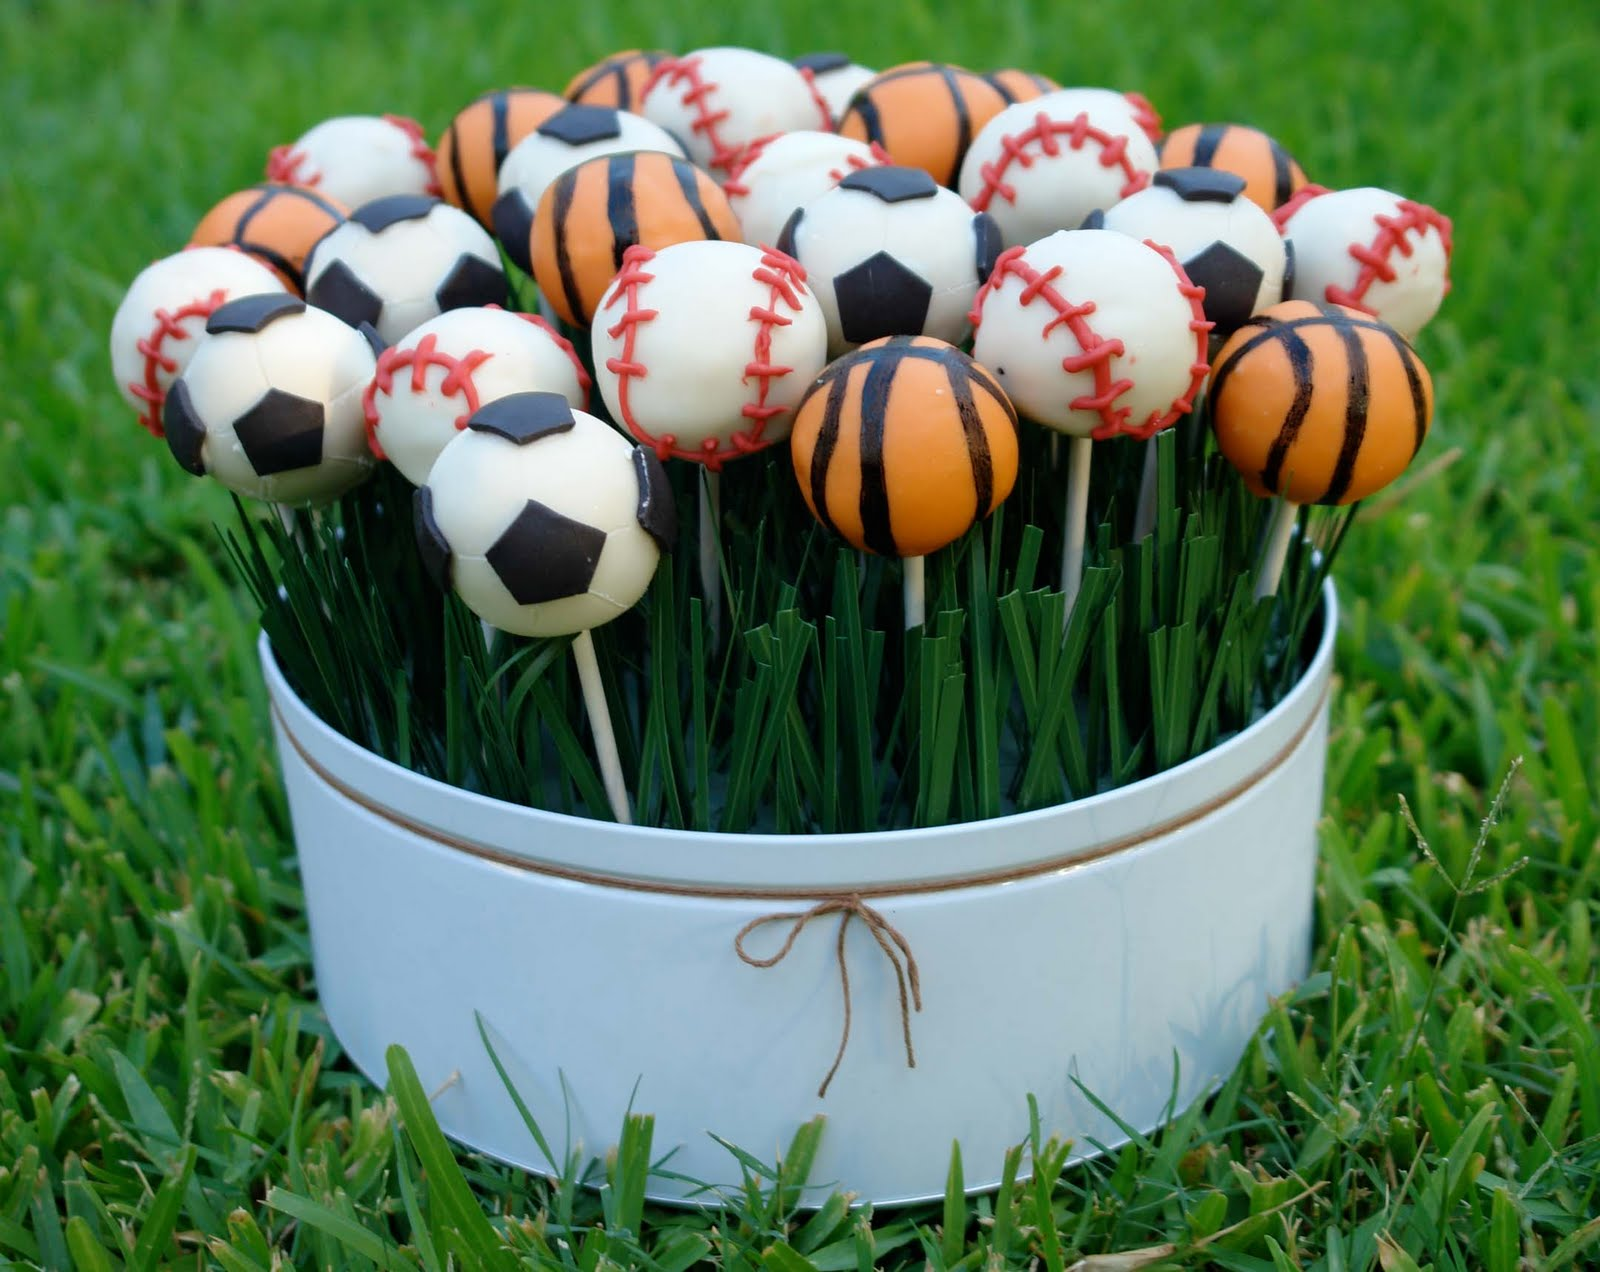 How To Make Sports Themed Cake Pops